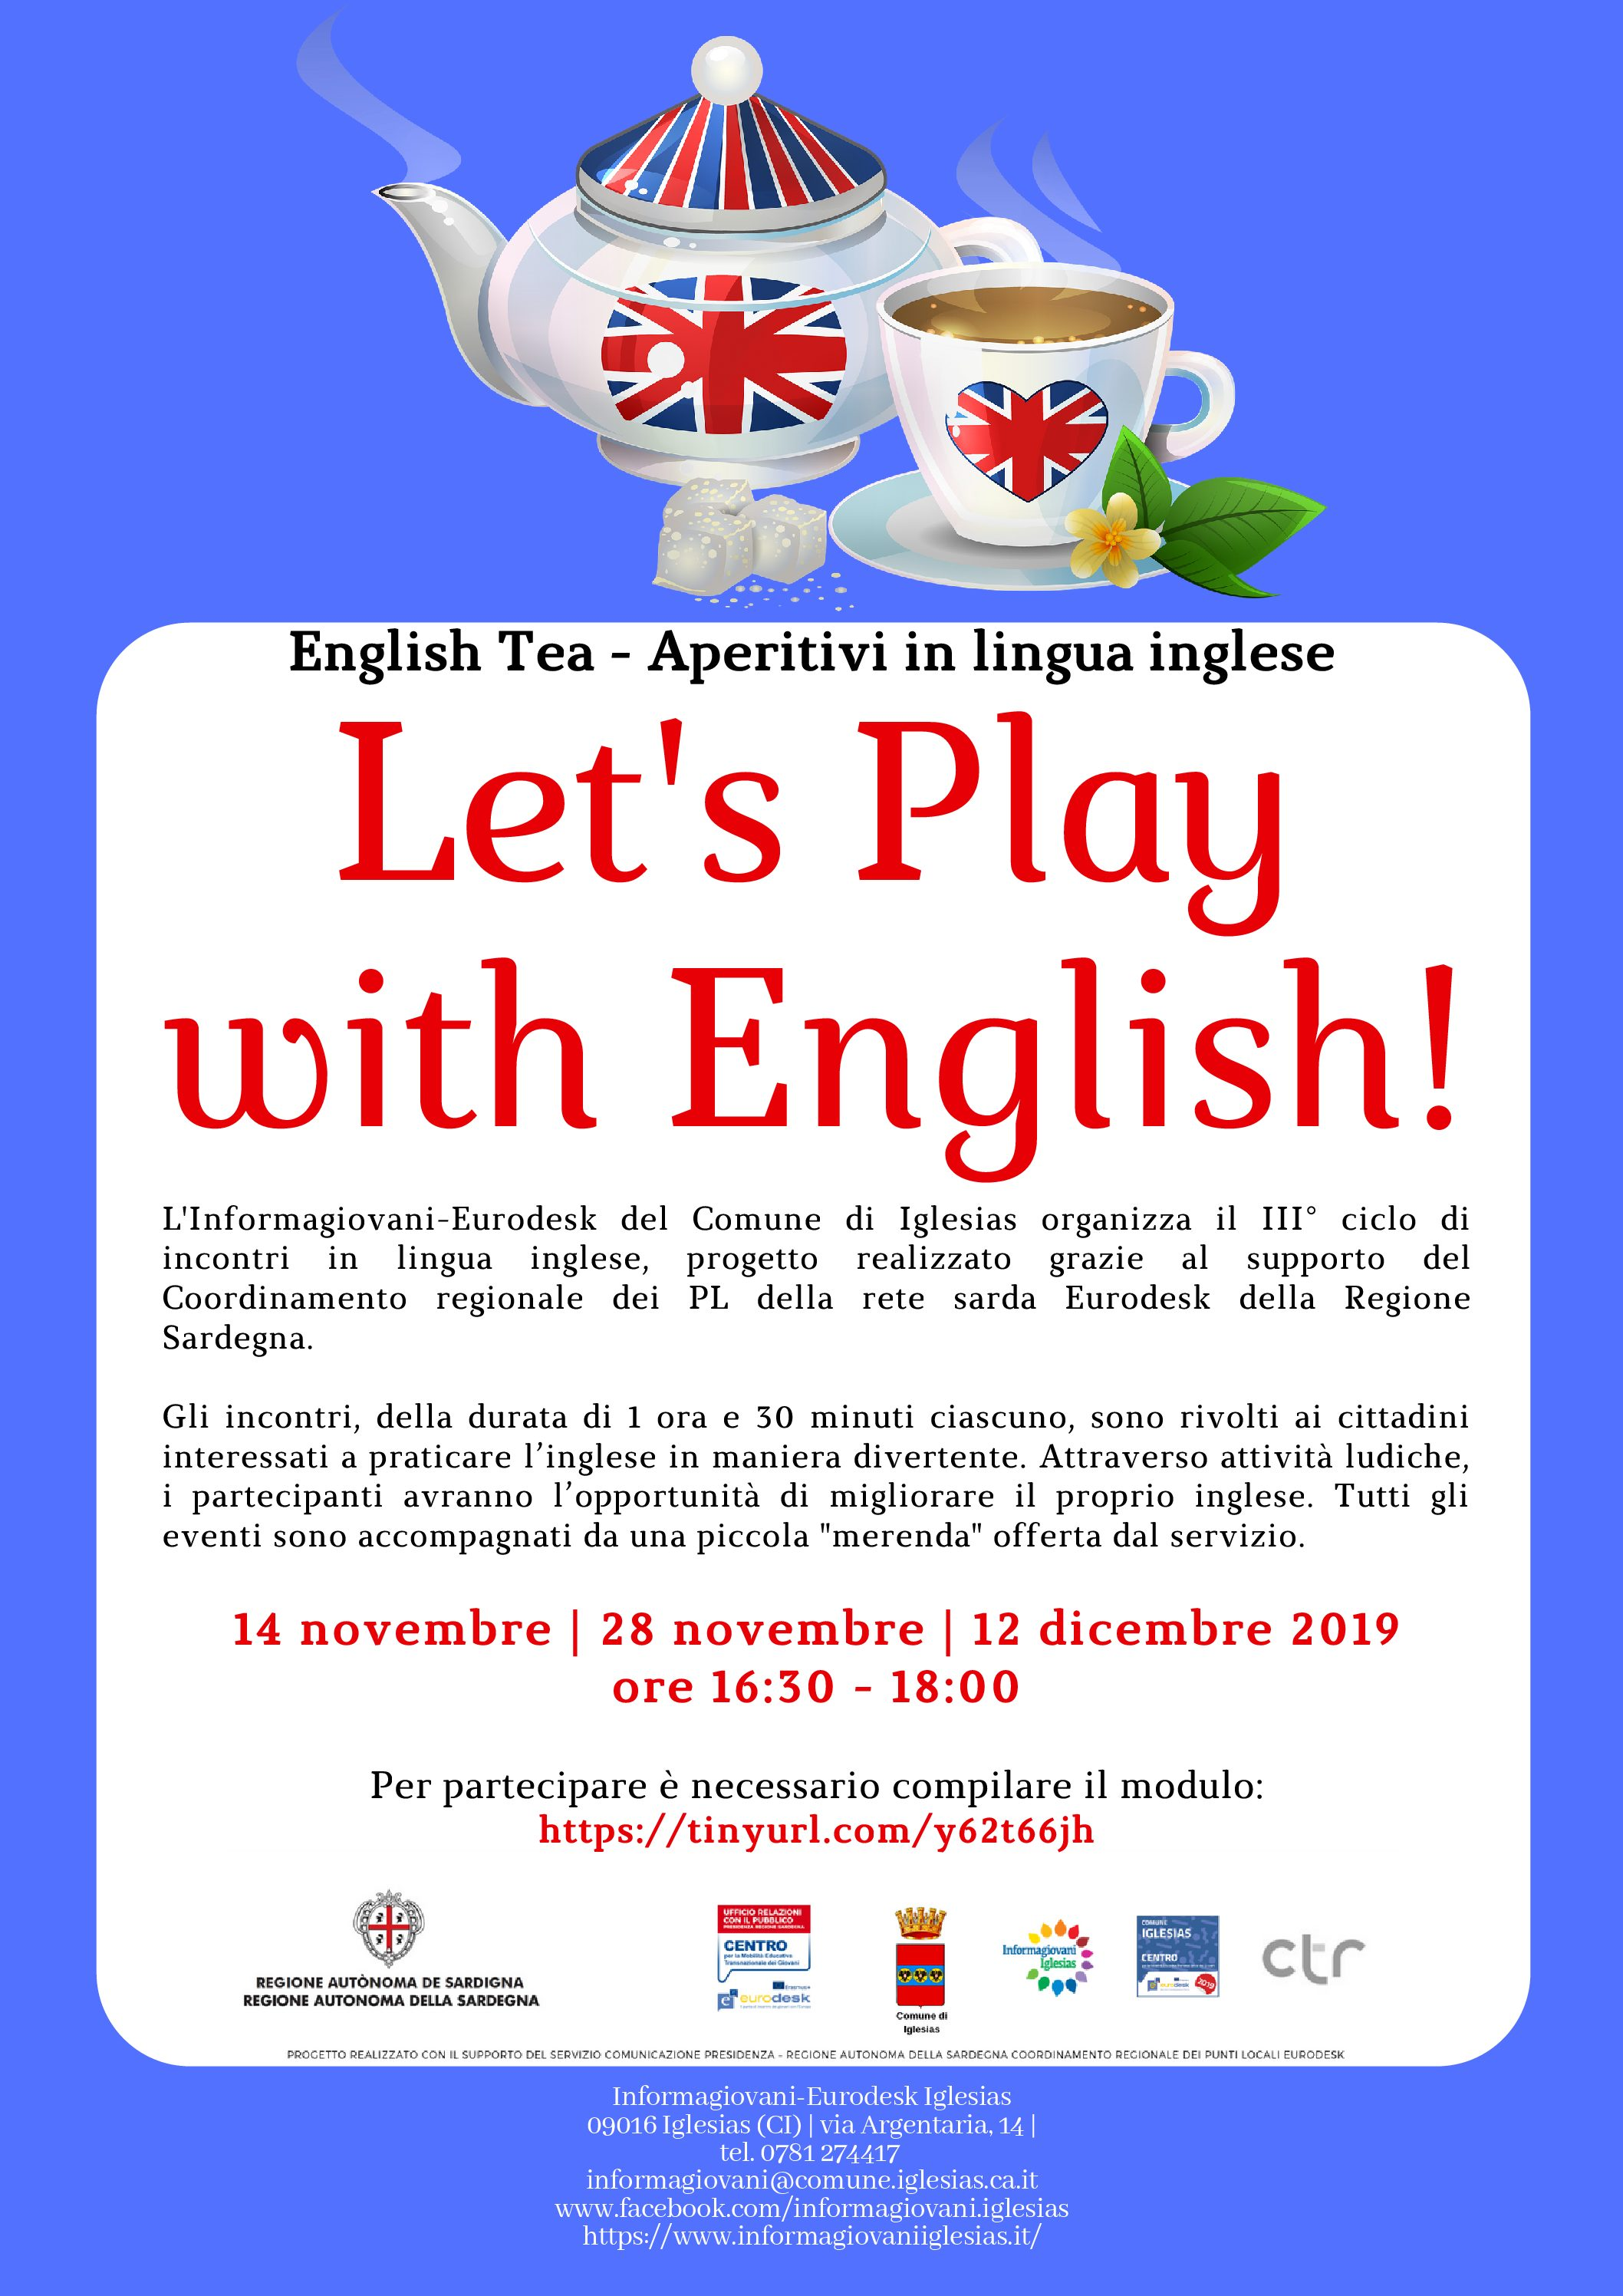 English Tea – Let's Play with English!